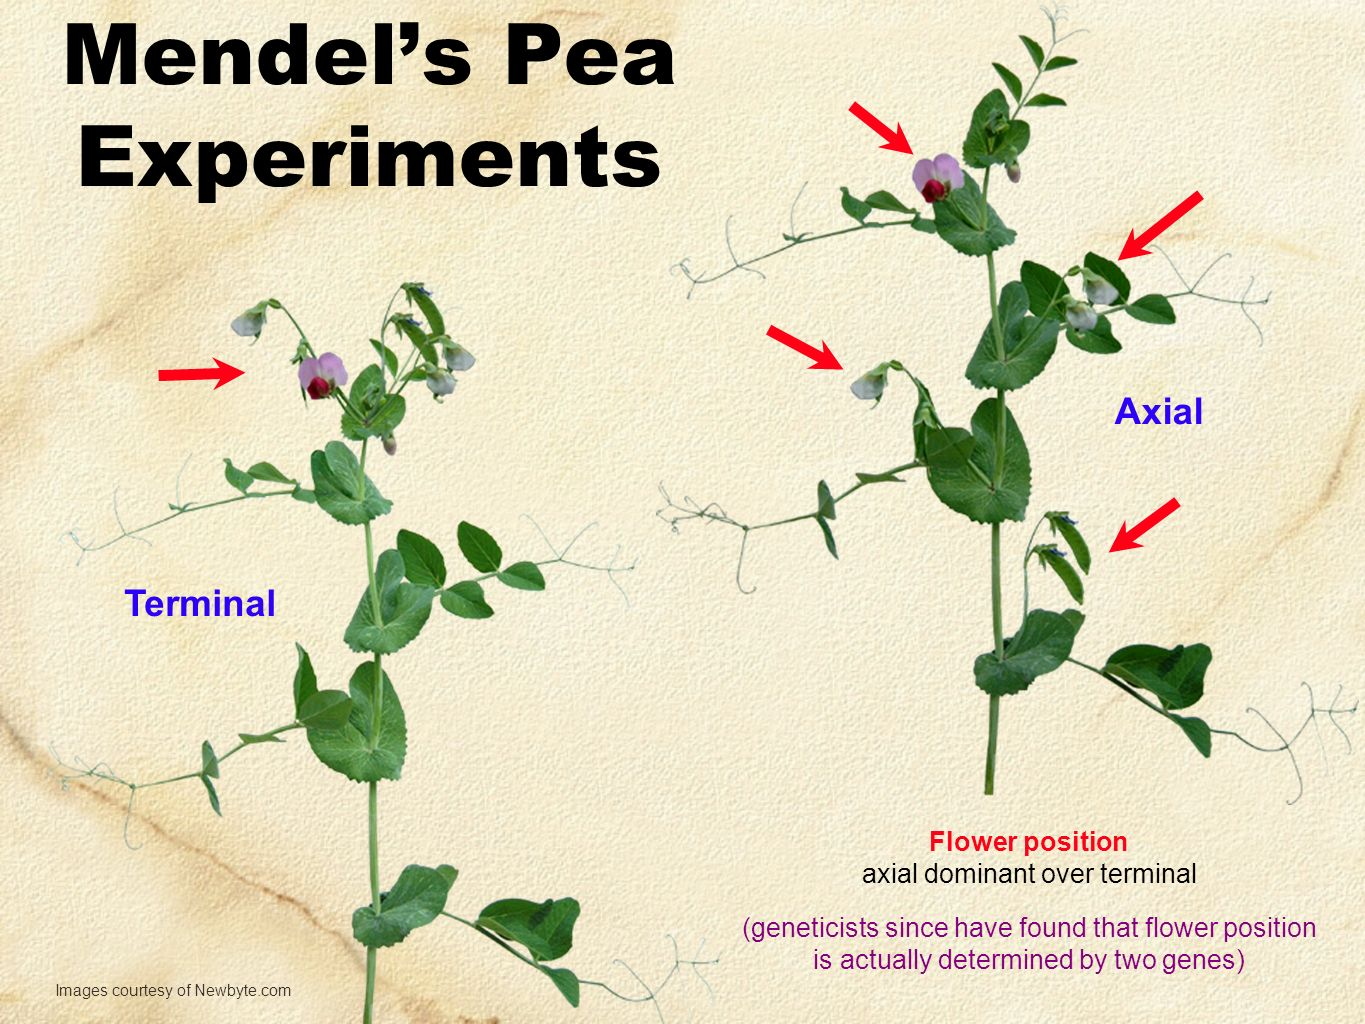 Mendel's Pea Experiments Flower position axial dominant over terminal Images courtesy of Newbyte.com Terminal Axial (geneticists since have found that flower position is actually determined by two genes)